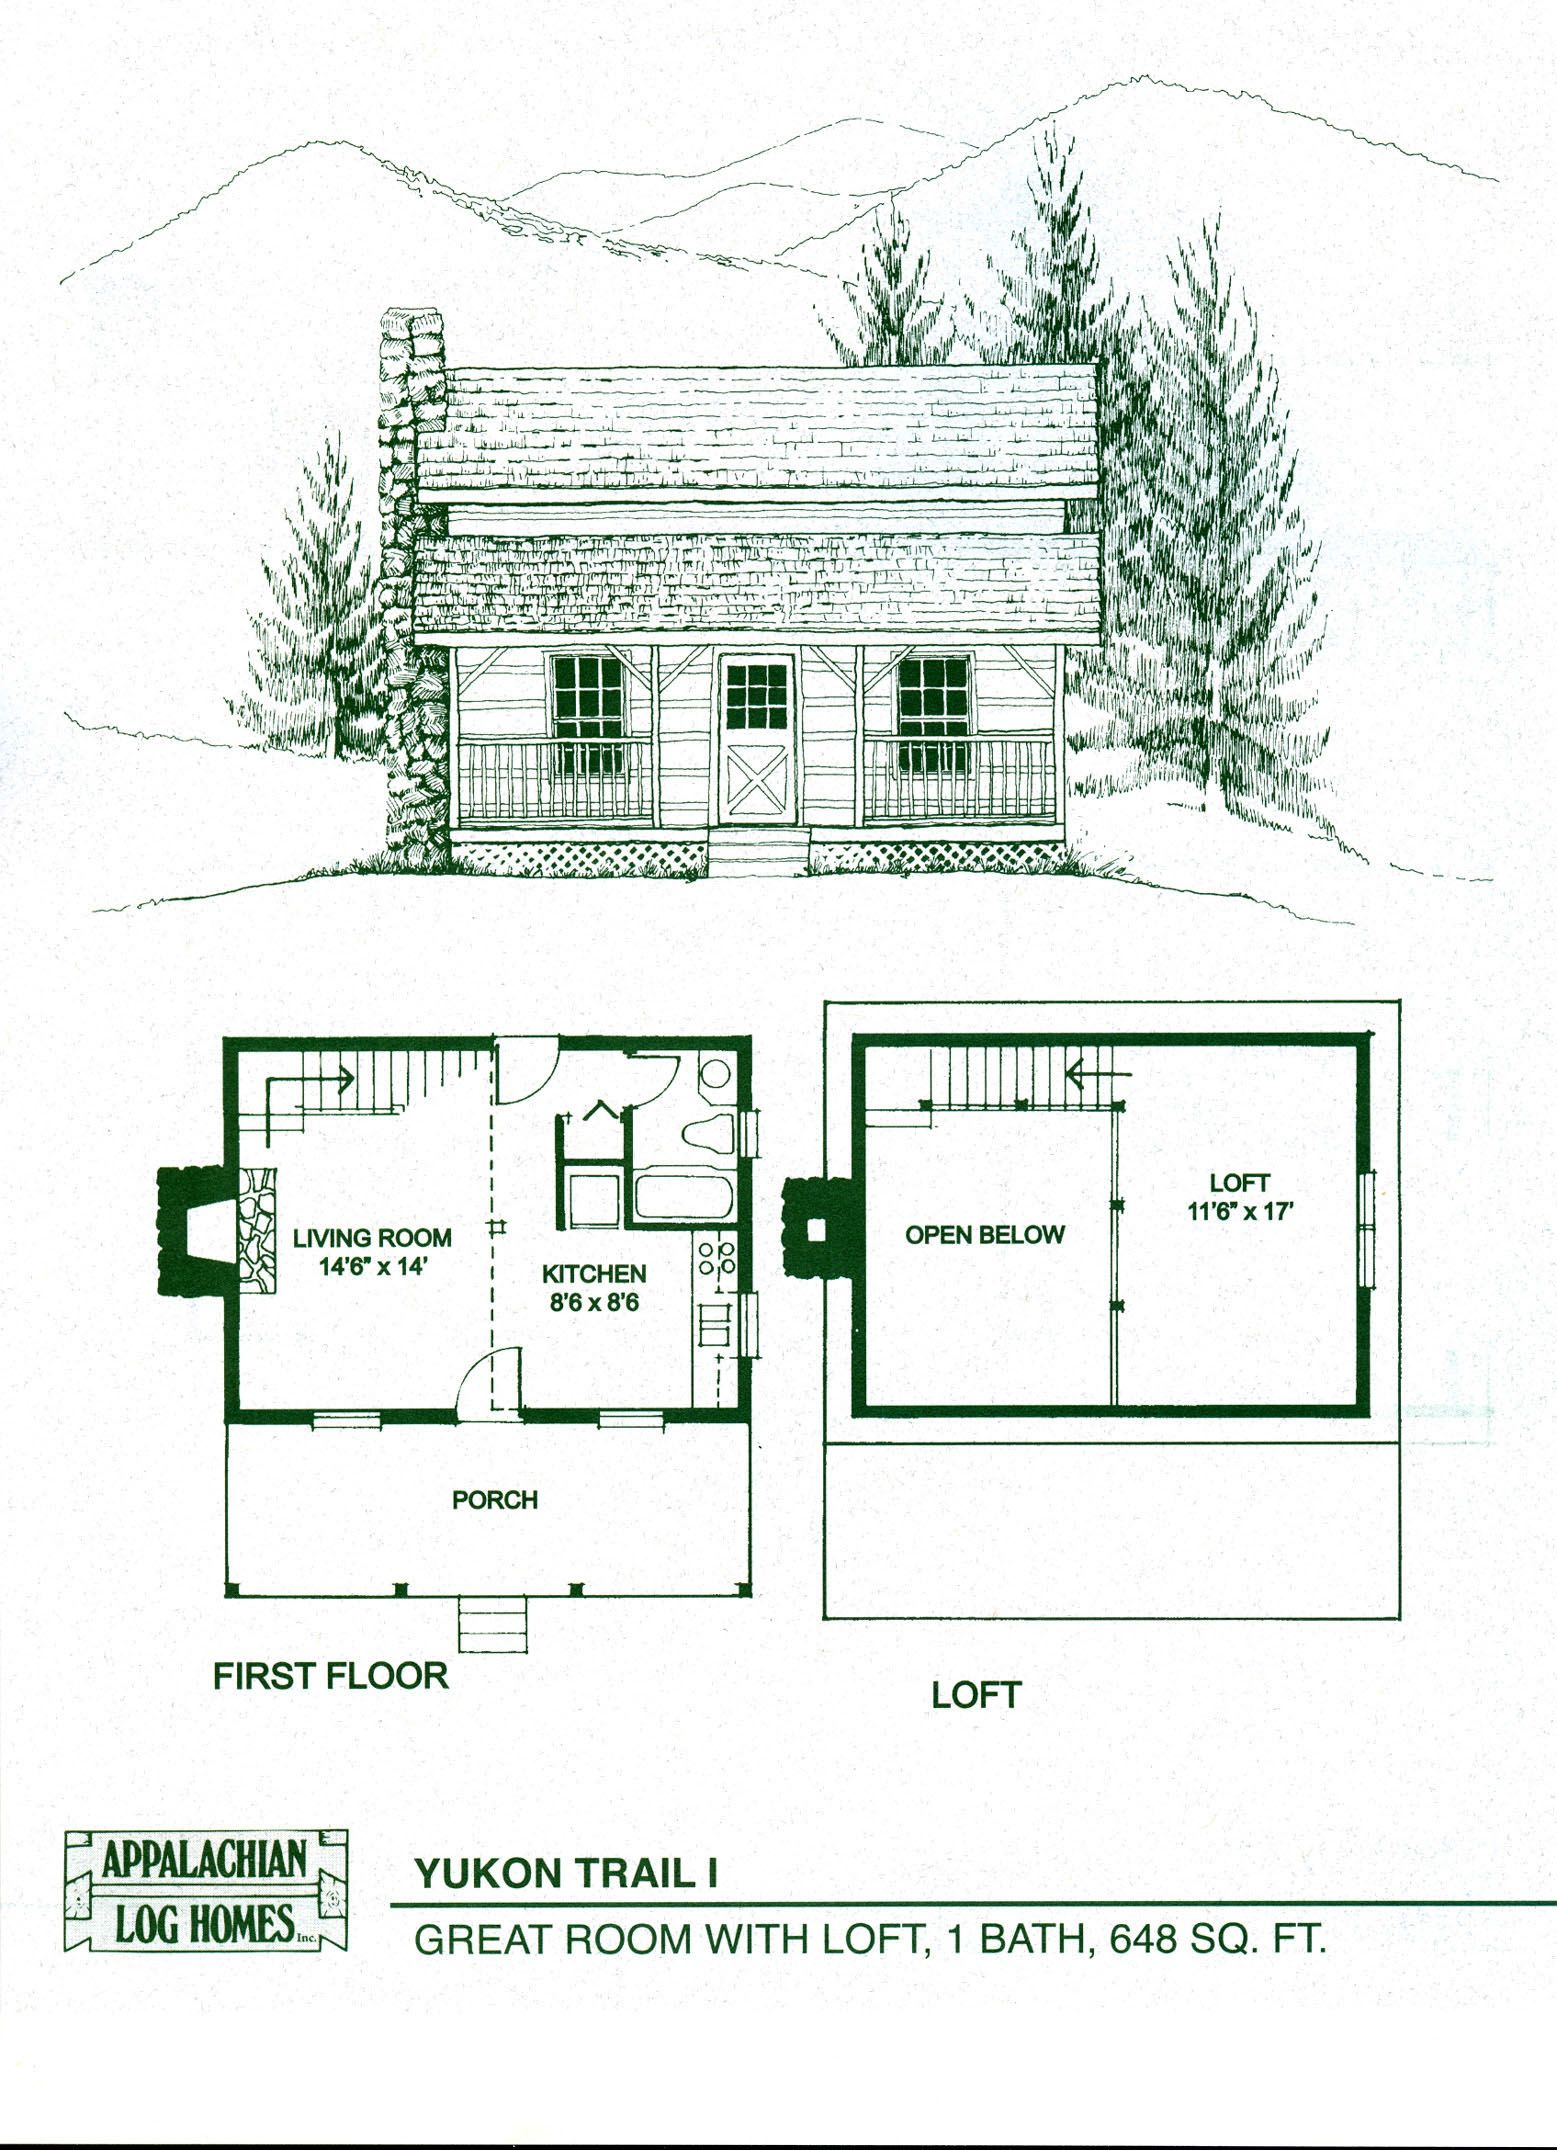 Cabin House Plans small house plan small contemporary house plan modern cabin plan house plans pictures Log Home Floor Plans Log Cabin Kits Appalachian Log Homes